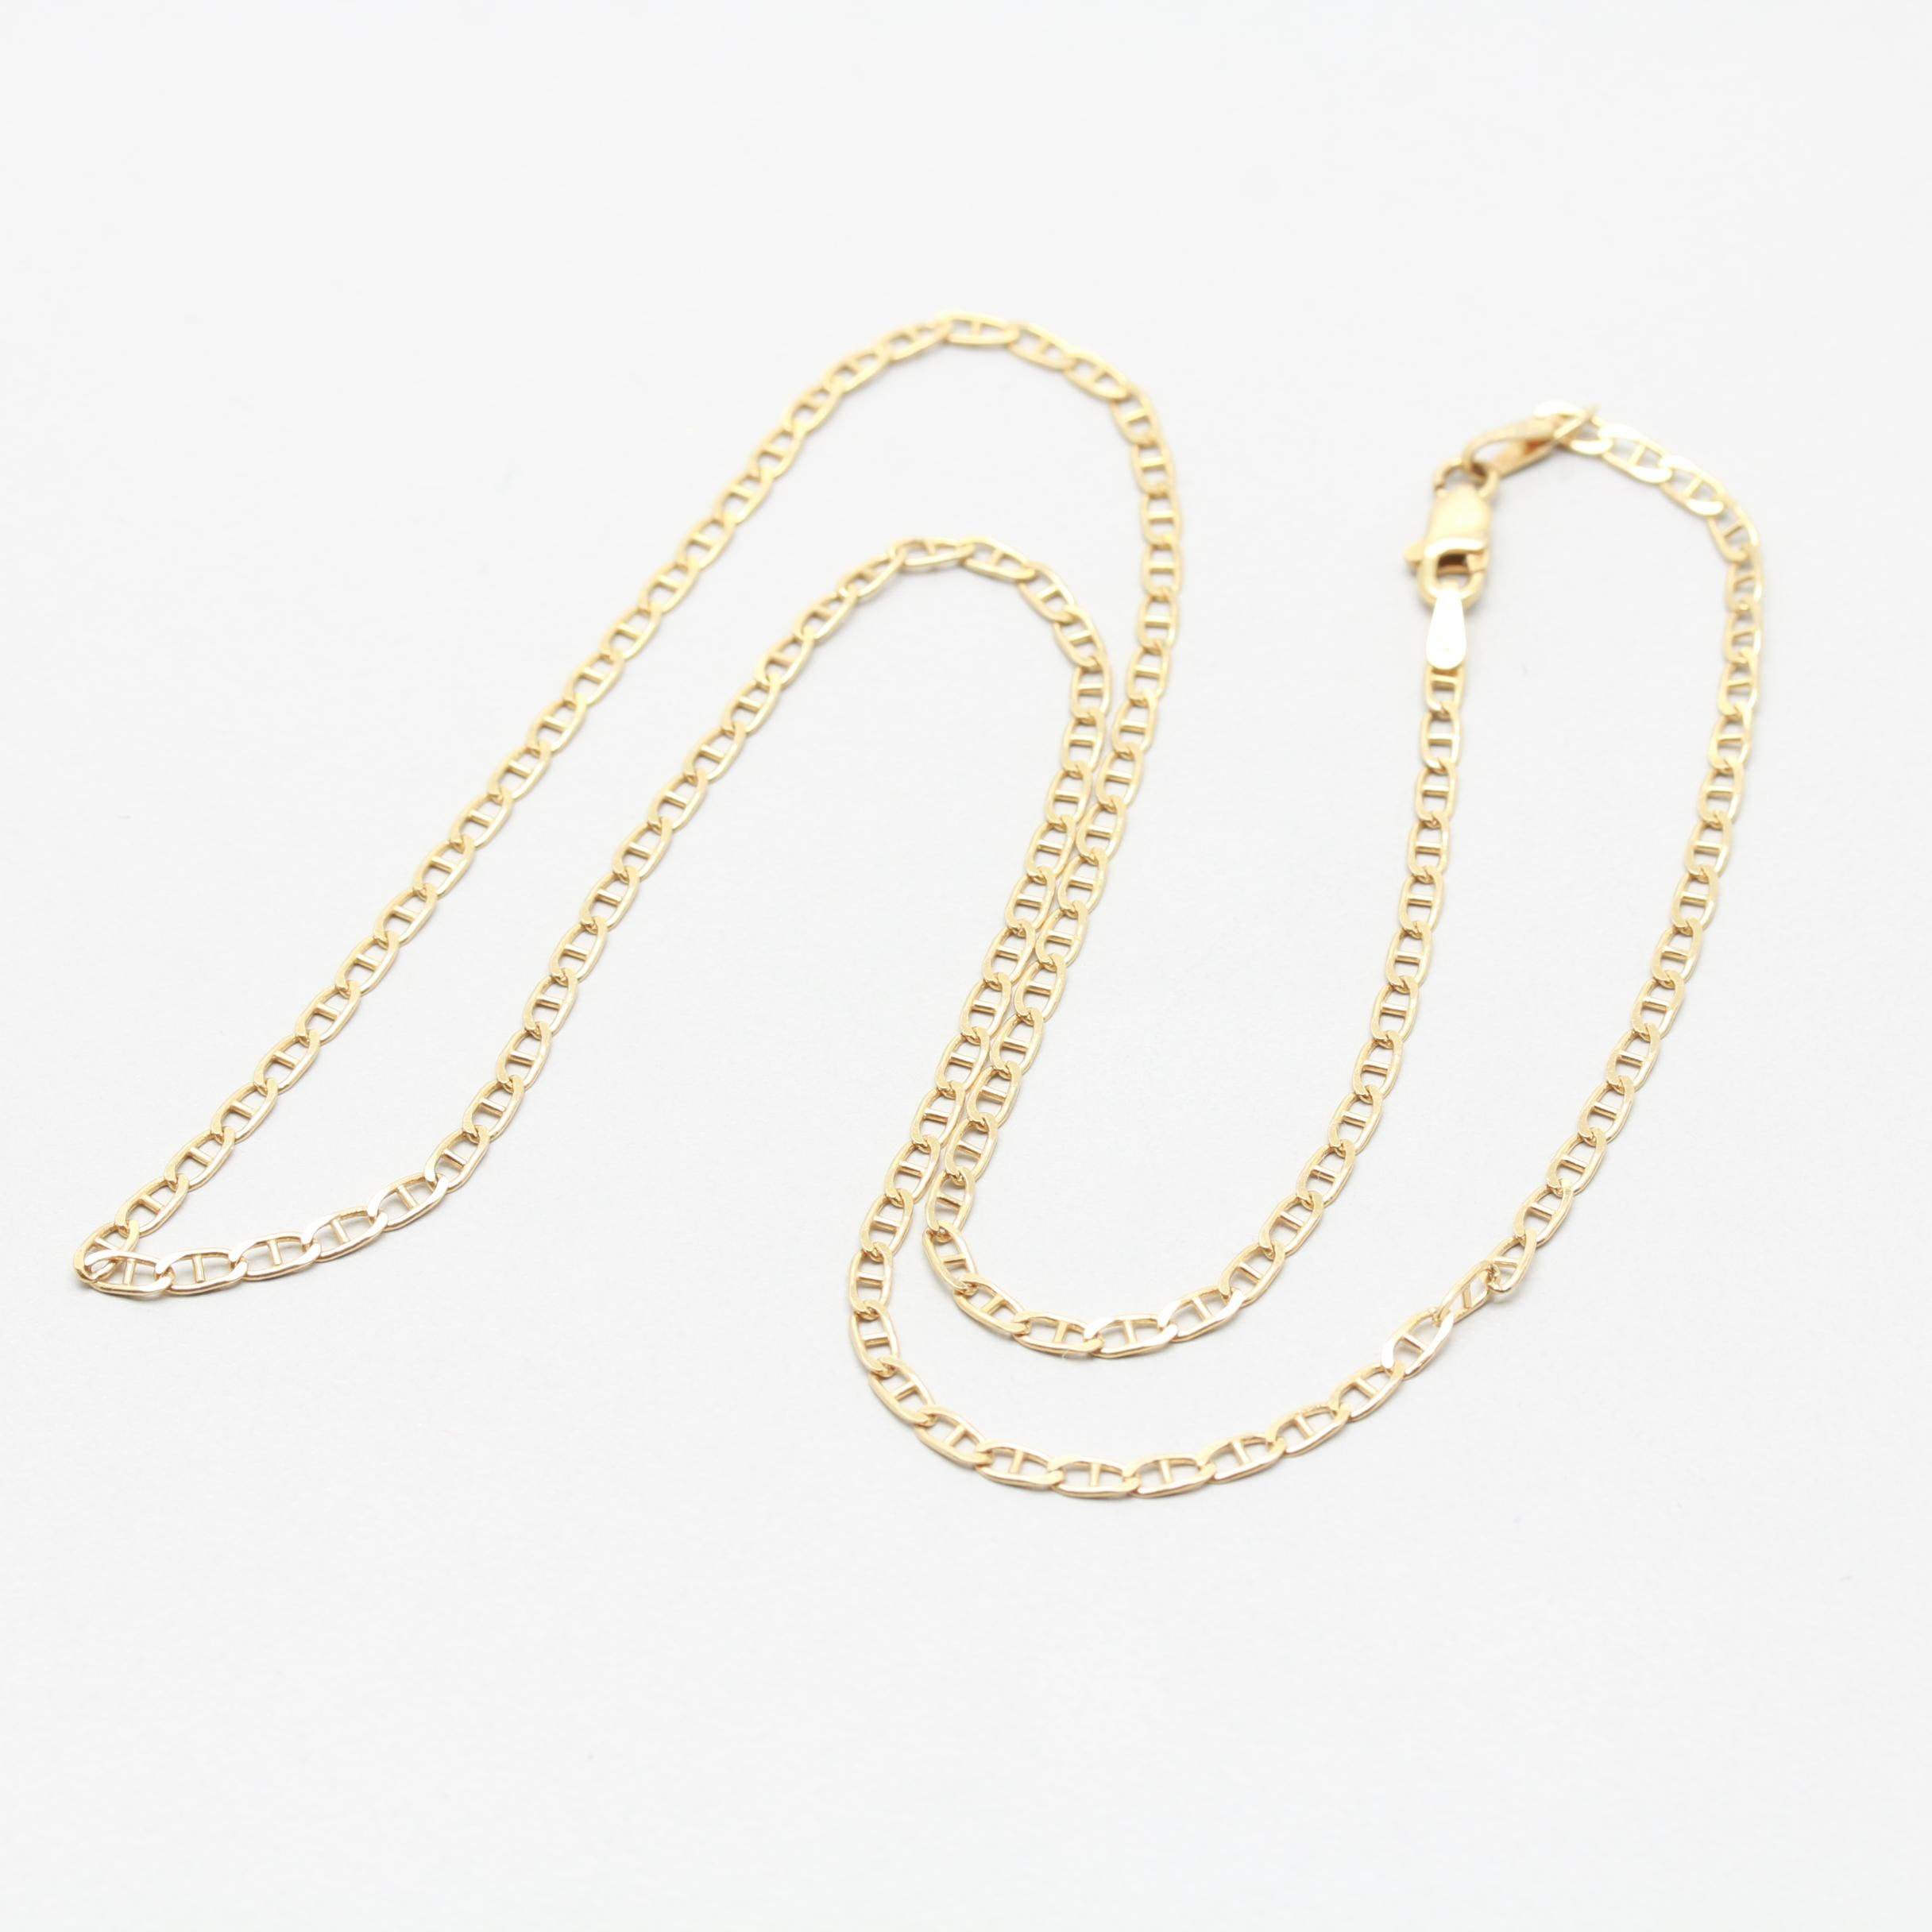 14K Yellow Gold Anchor Chain Necklace